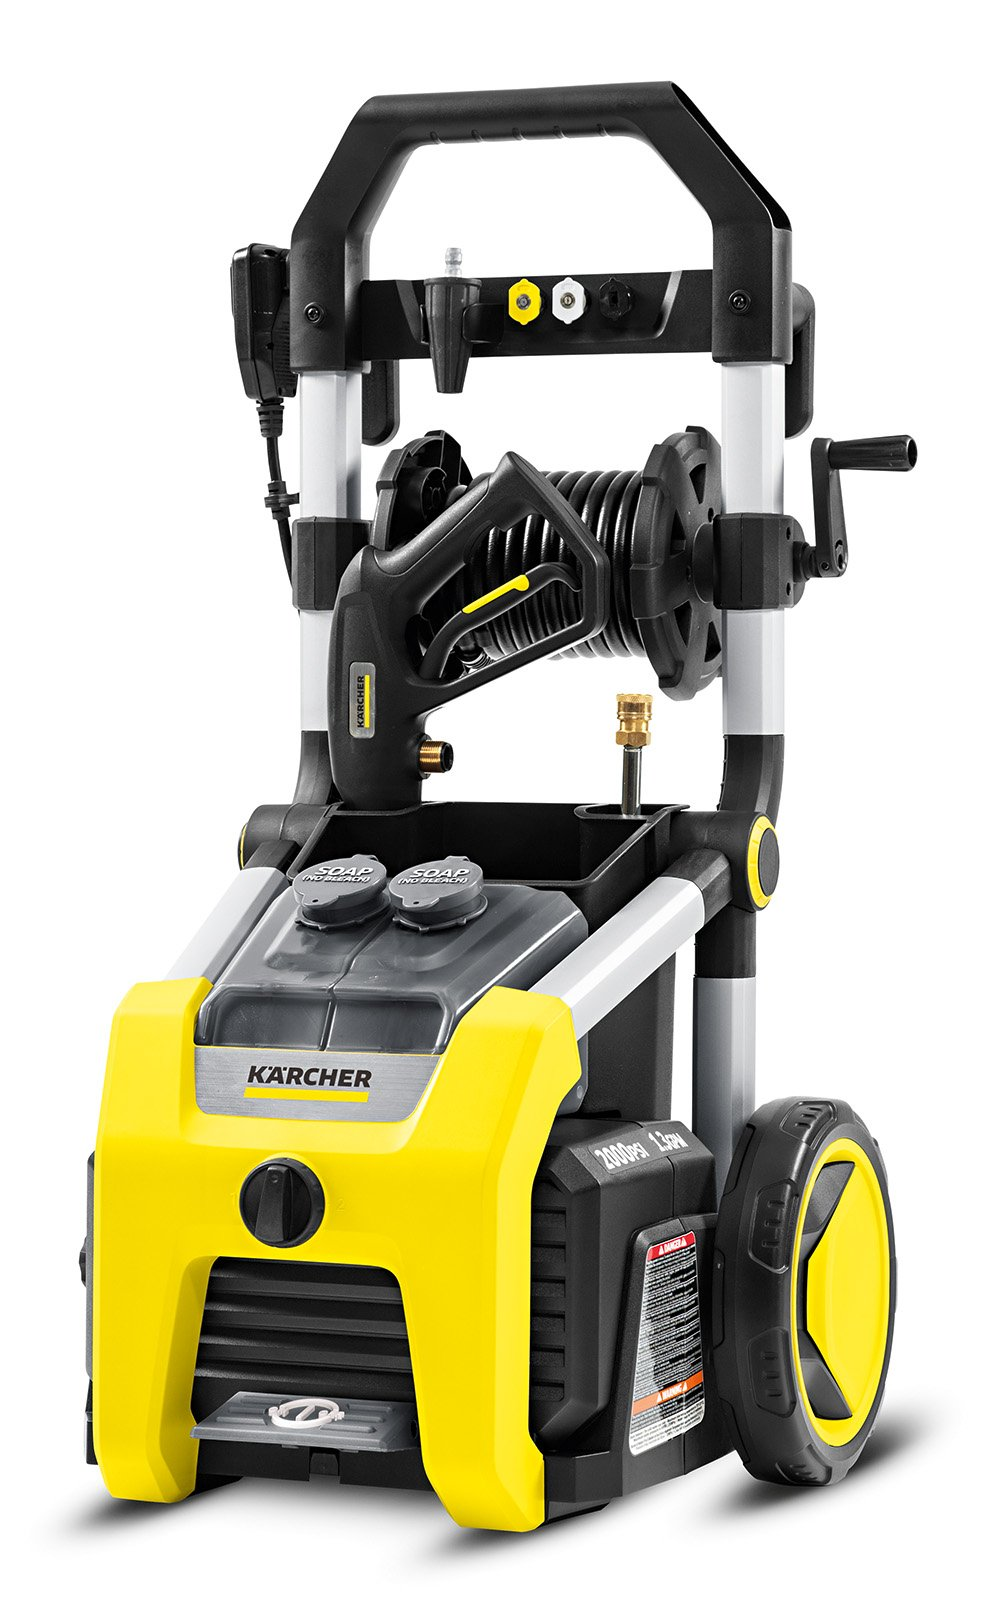 Karcher K2000 Electric Power Pressure Washer 2000 PSI TruPressure, 3-Year Warranty, Turbo Nozzle Included by Karcher (Image #1)